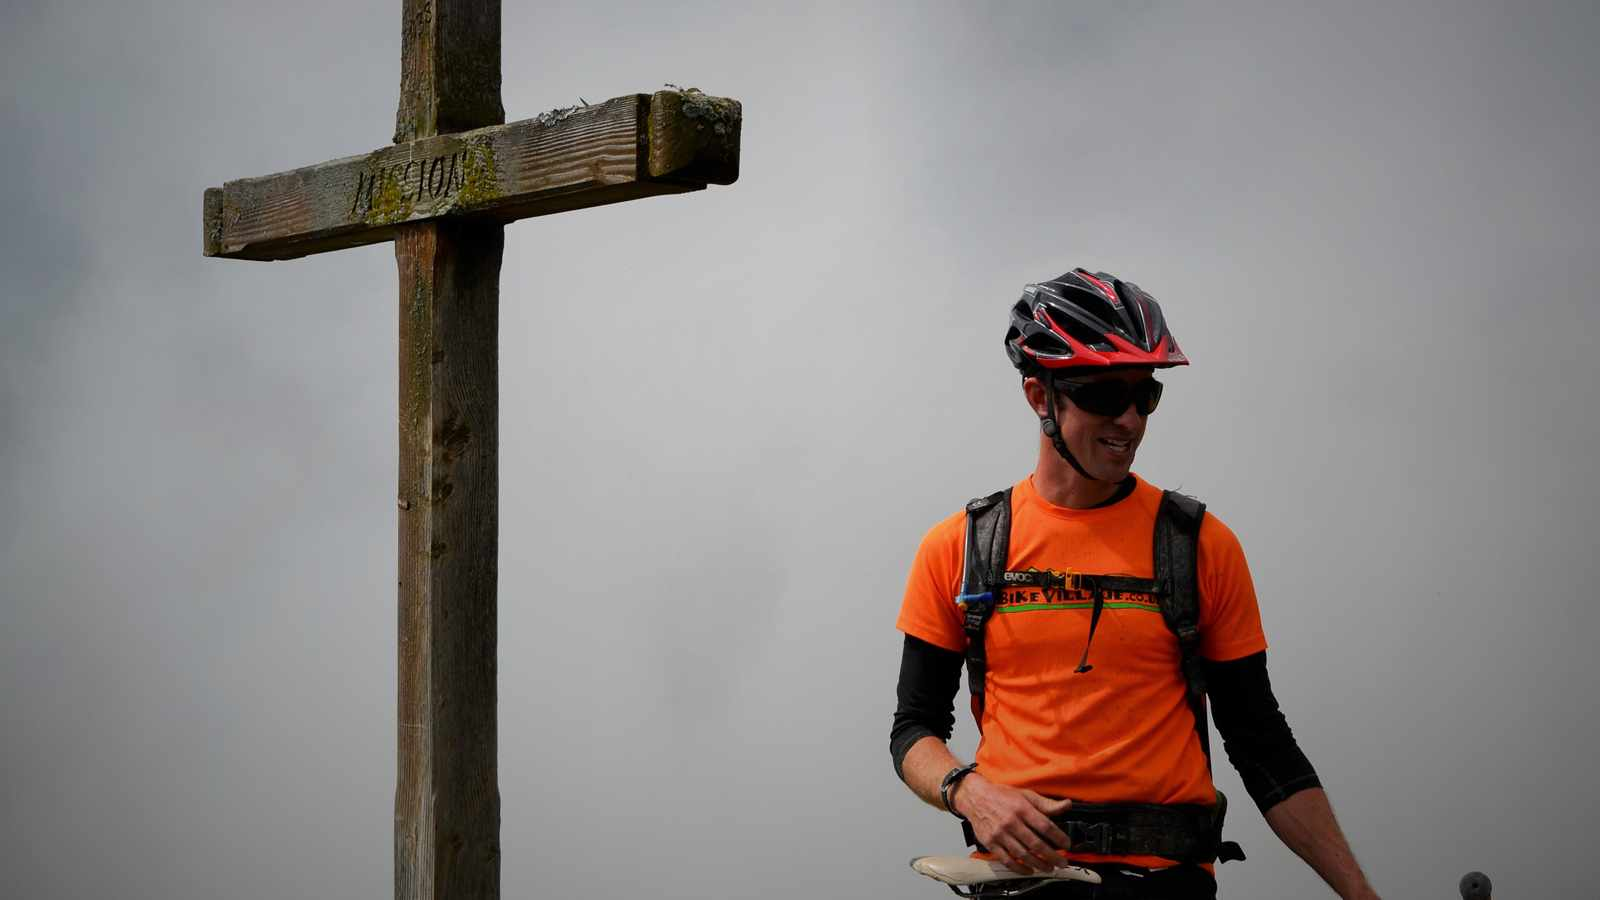 Not as bleak as it seems? Sam Morris of Bike Village has made inroads to make life easier for British guides in France